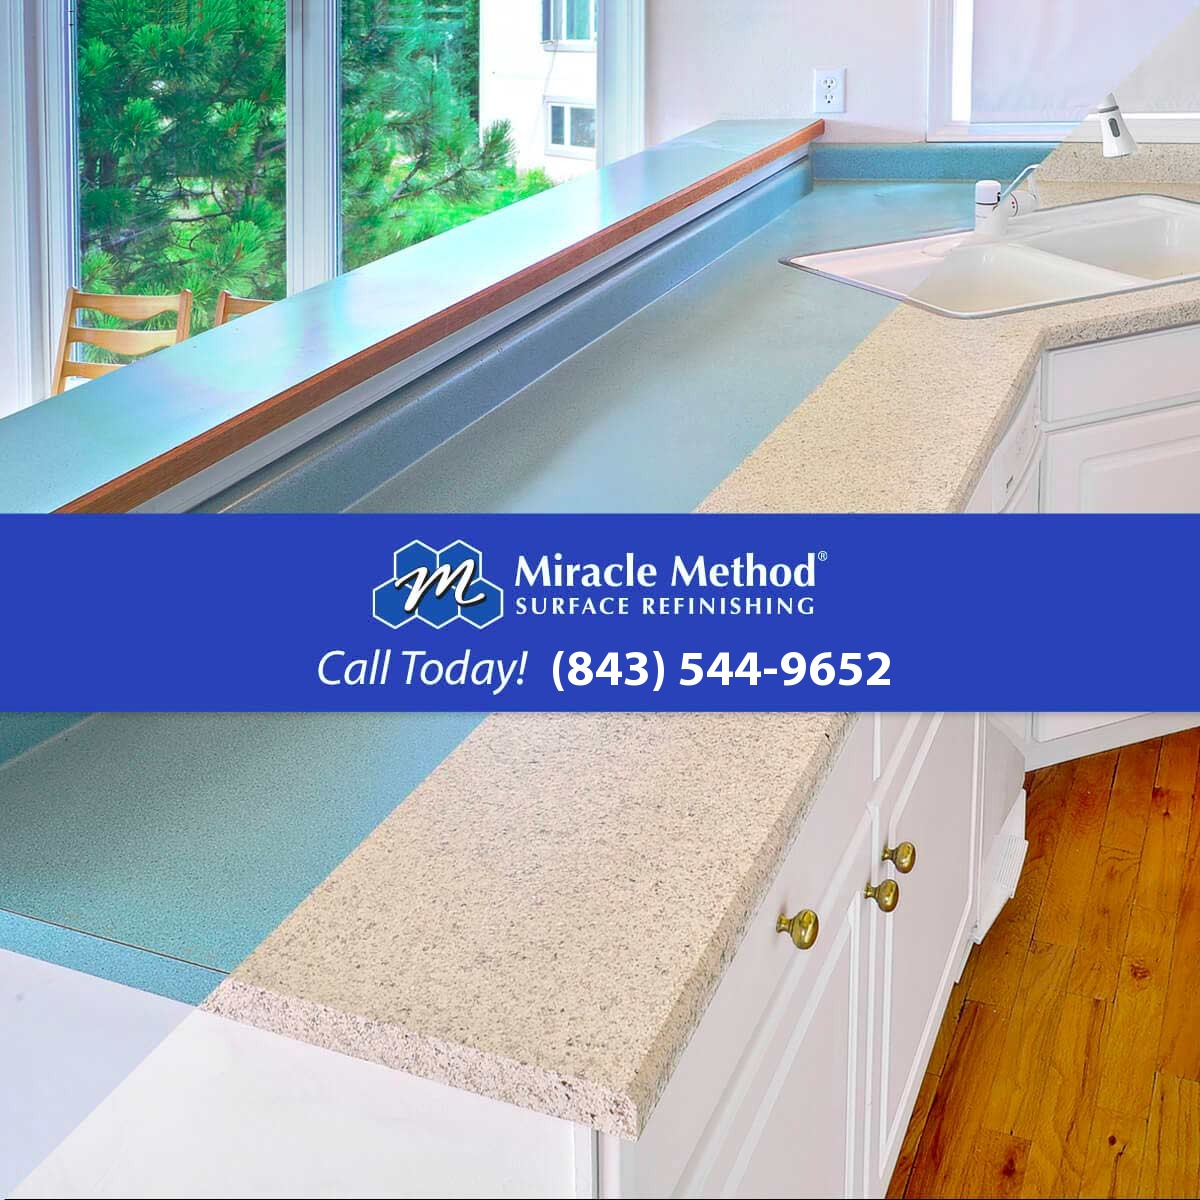 Bathtub Refinishing Charleston, SC - Bathtub Resurfacing